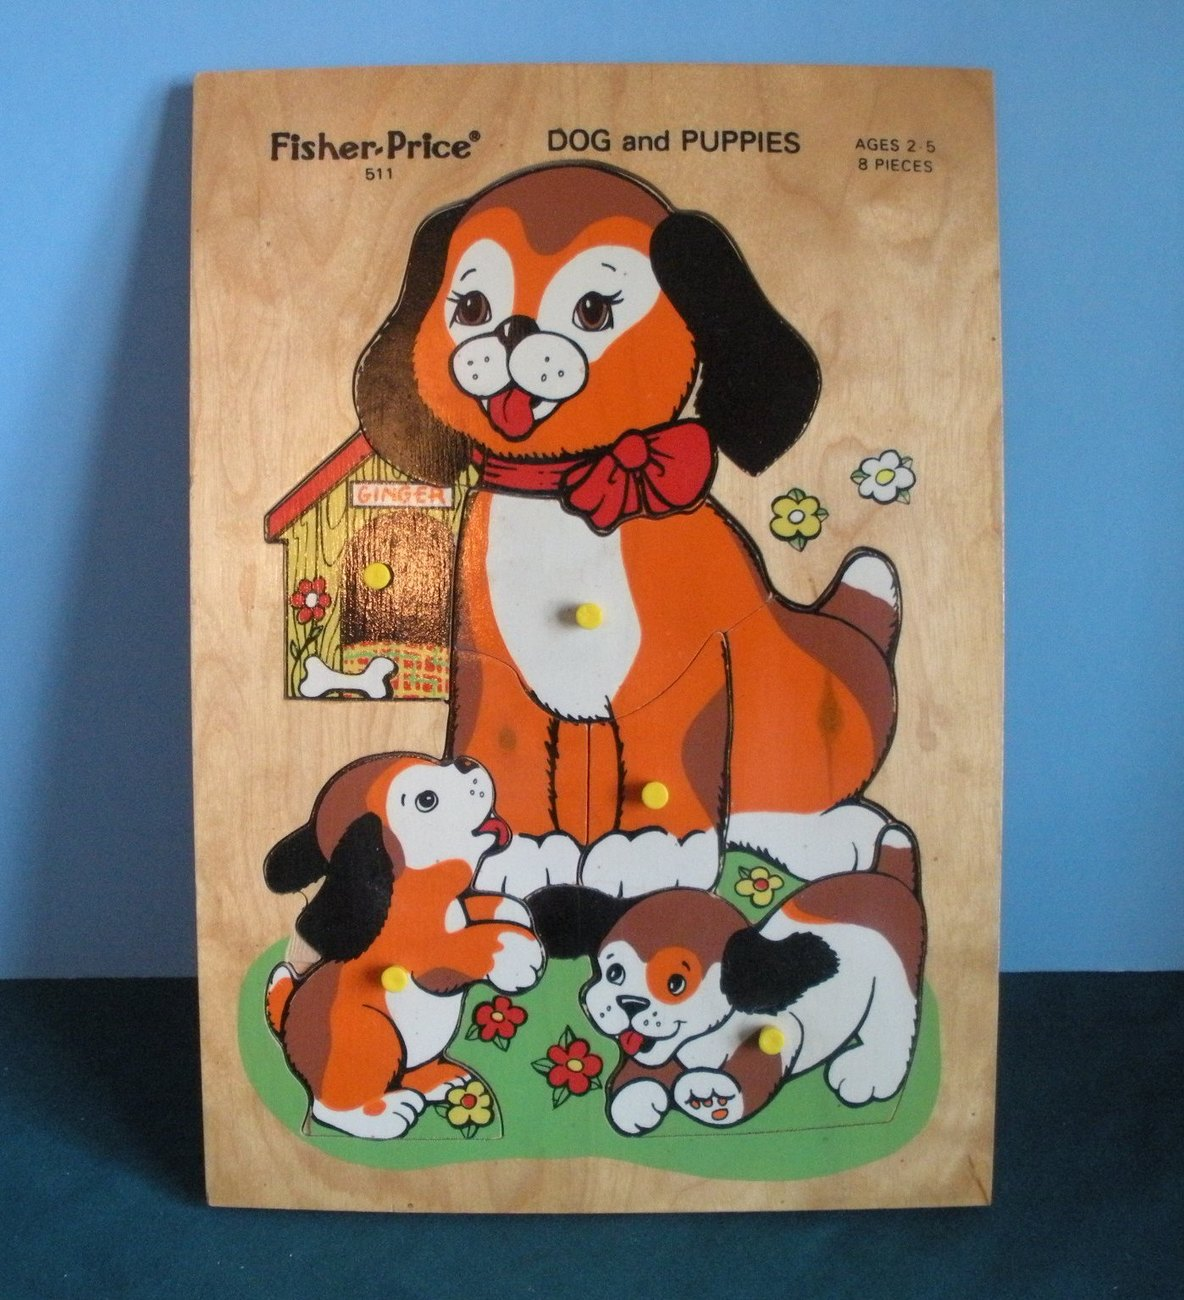 Primary image for Vintage Fisher Price Pick Up 'N Peek #511 Wood Puzzle Dog and Puppies VG+++-EXC!